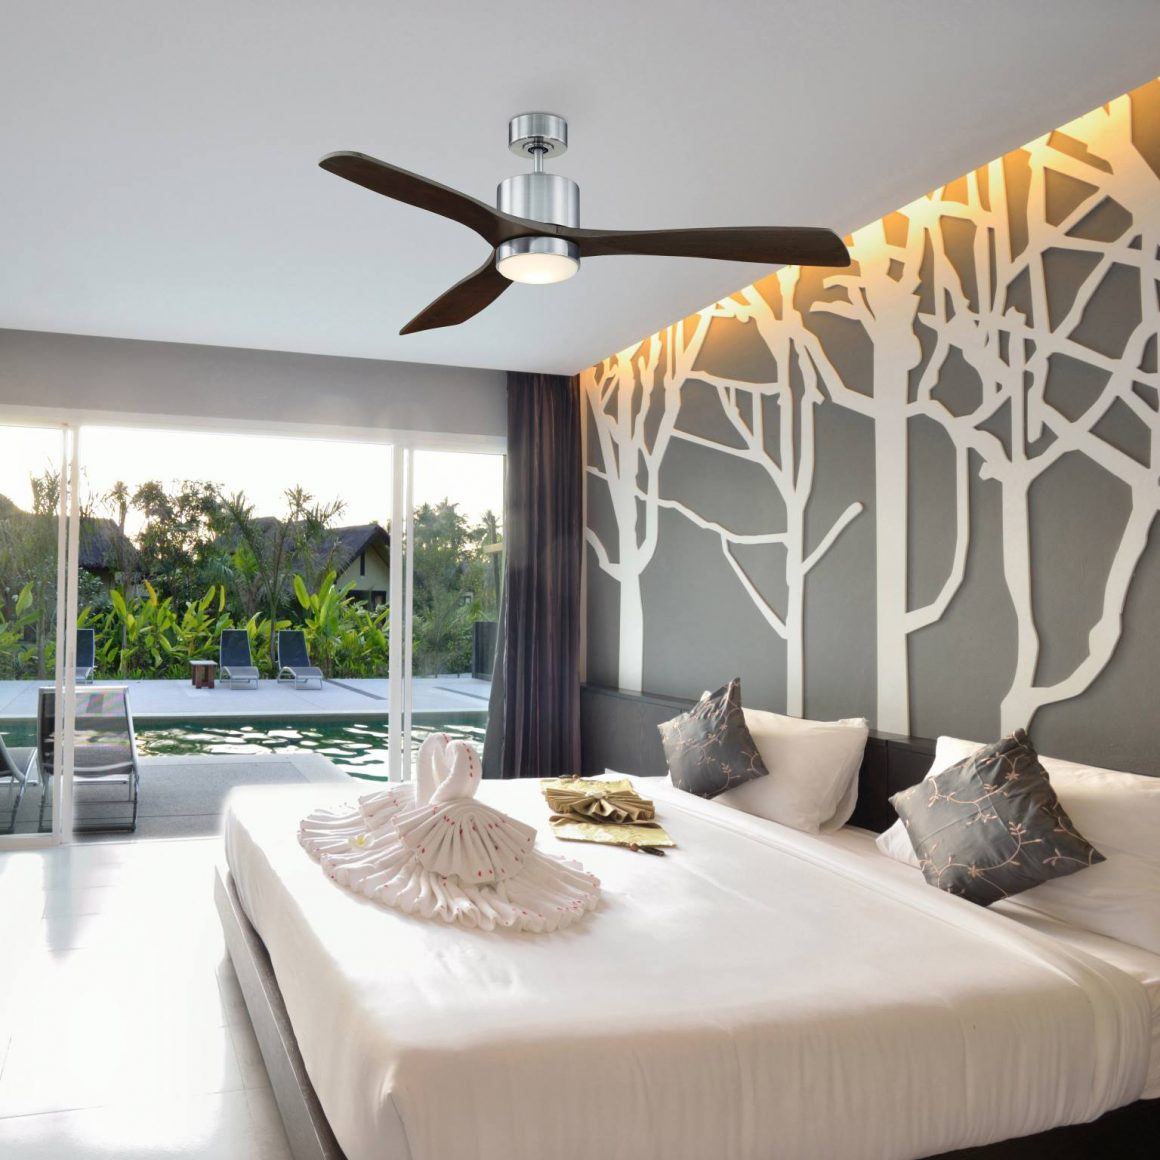 A contemporary bedroom with mid-century modern ceiling fan and large windows facing the swimming pool